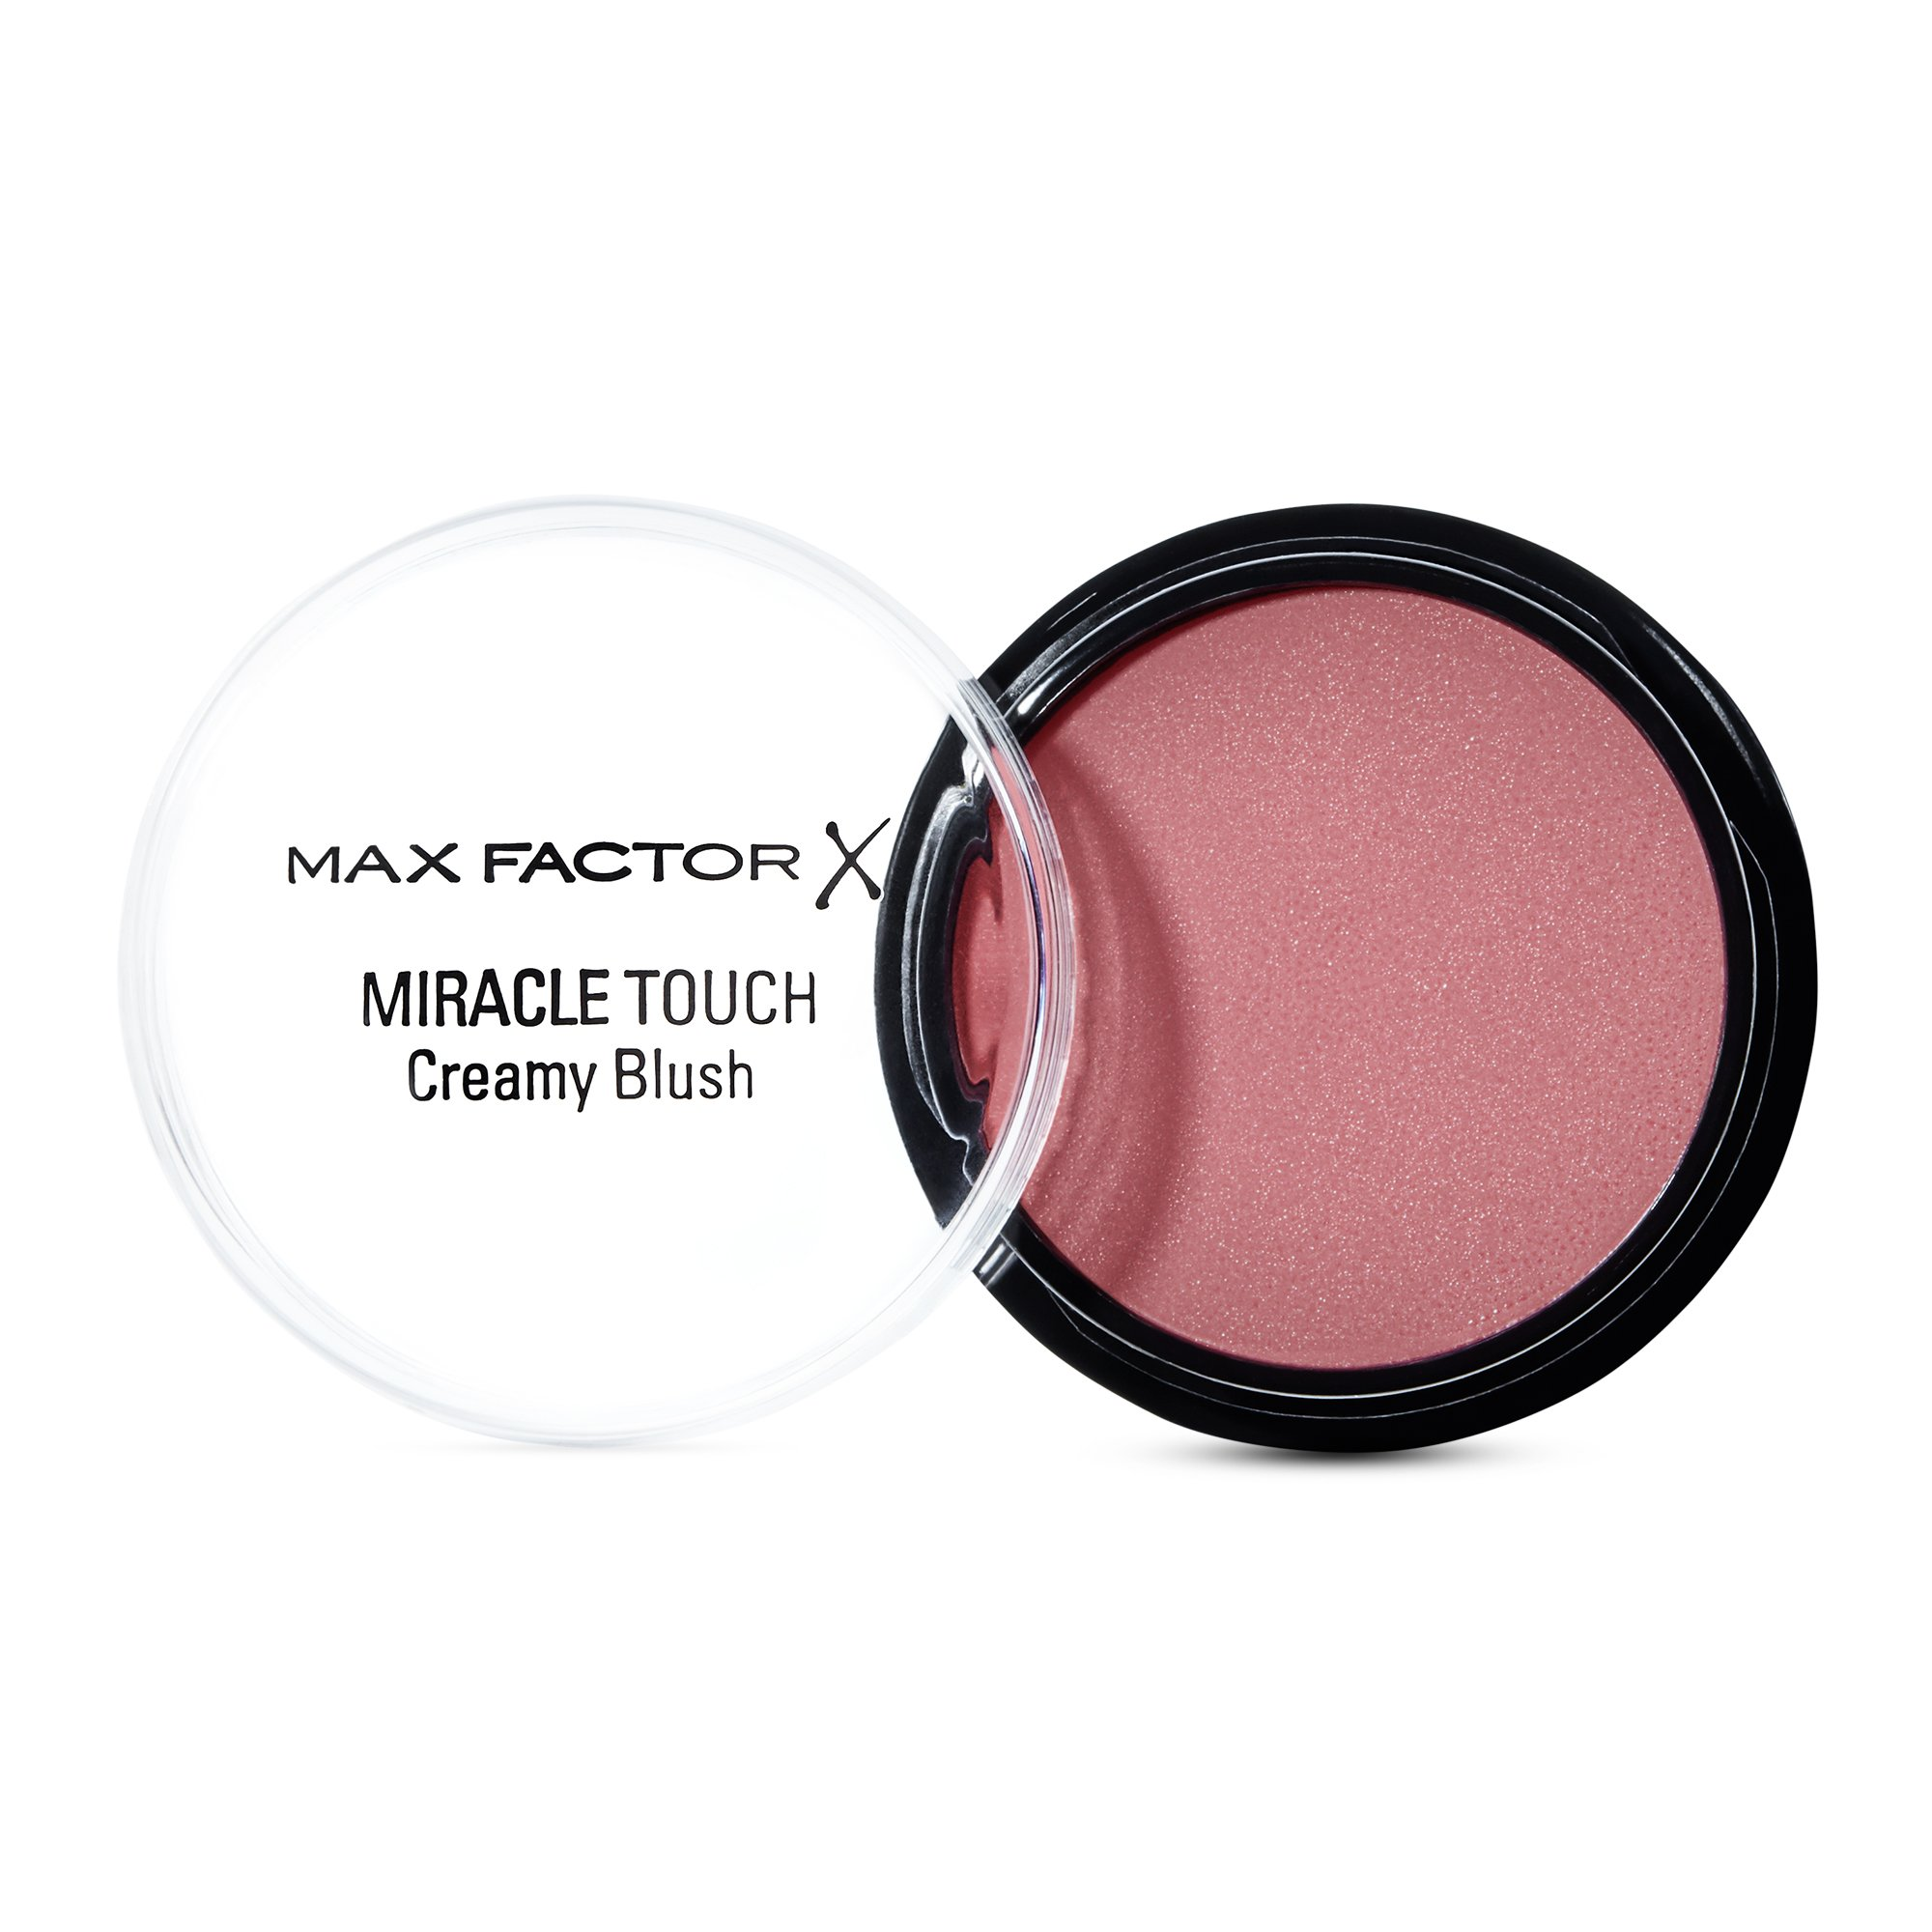 Miracle Touch Creamy Blush No. 14 Soft Pink by Max Factor for Women - 11.5 gram Blush by Max Factor (Image #1)